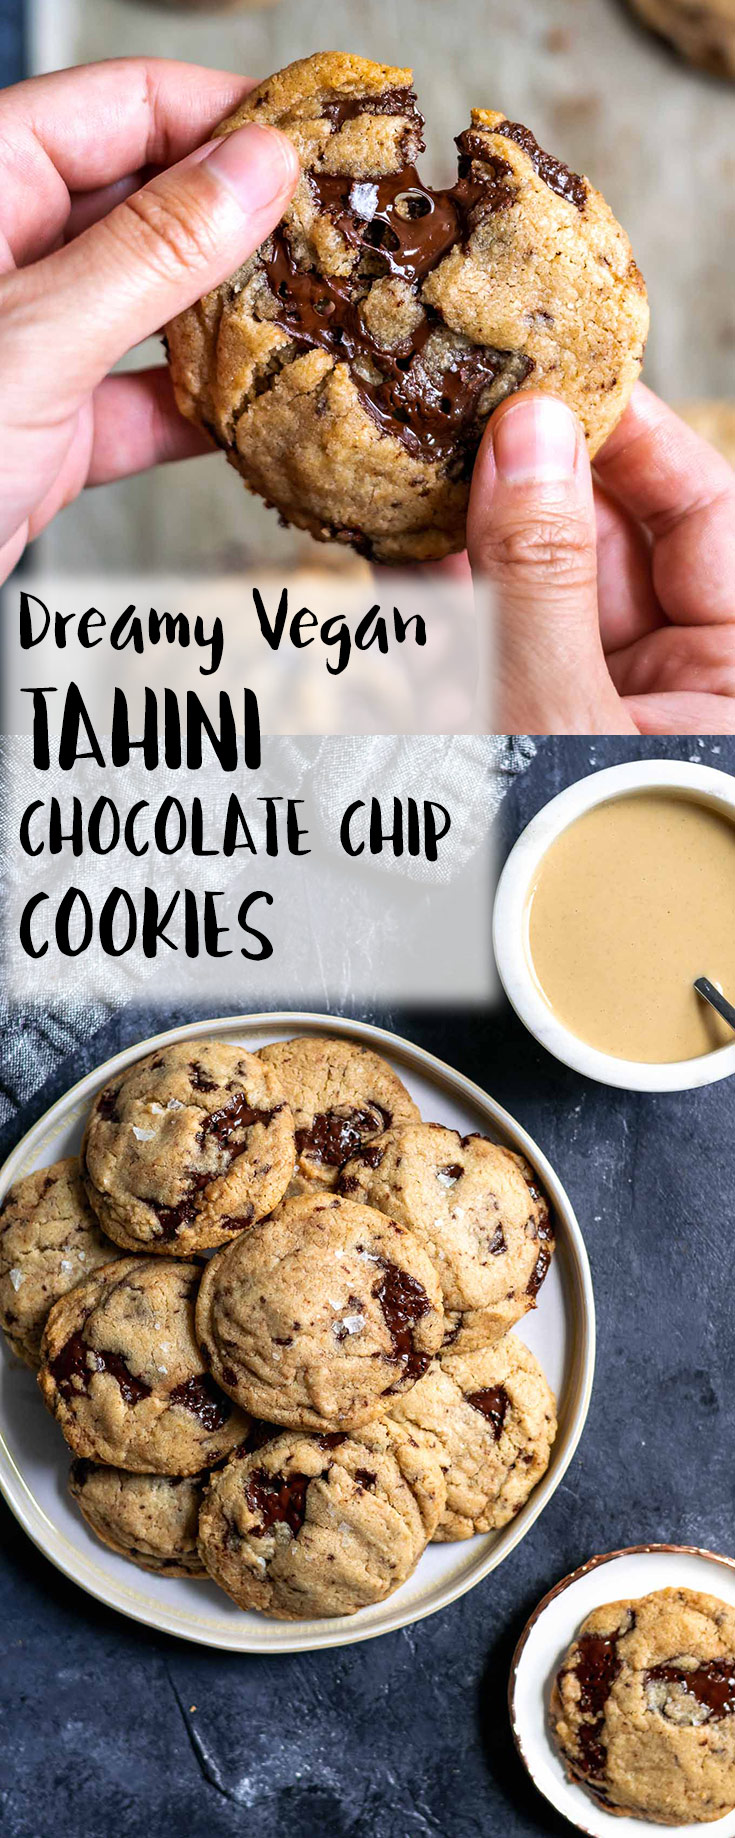 These chewy vegan tahini chocolate chip cookies are laced with chunks of dark chocolate that melt into dreamy puddles in the oven. Sesame paste adds a nice nuttiness, and deepens the bittersweet flavors of the dark chocolate. They're bound to become your new favorite cookie! | thecuriouschickpea.com #vegan #dessert #cookies #tahini